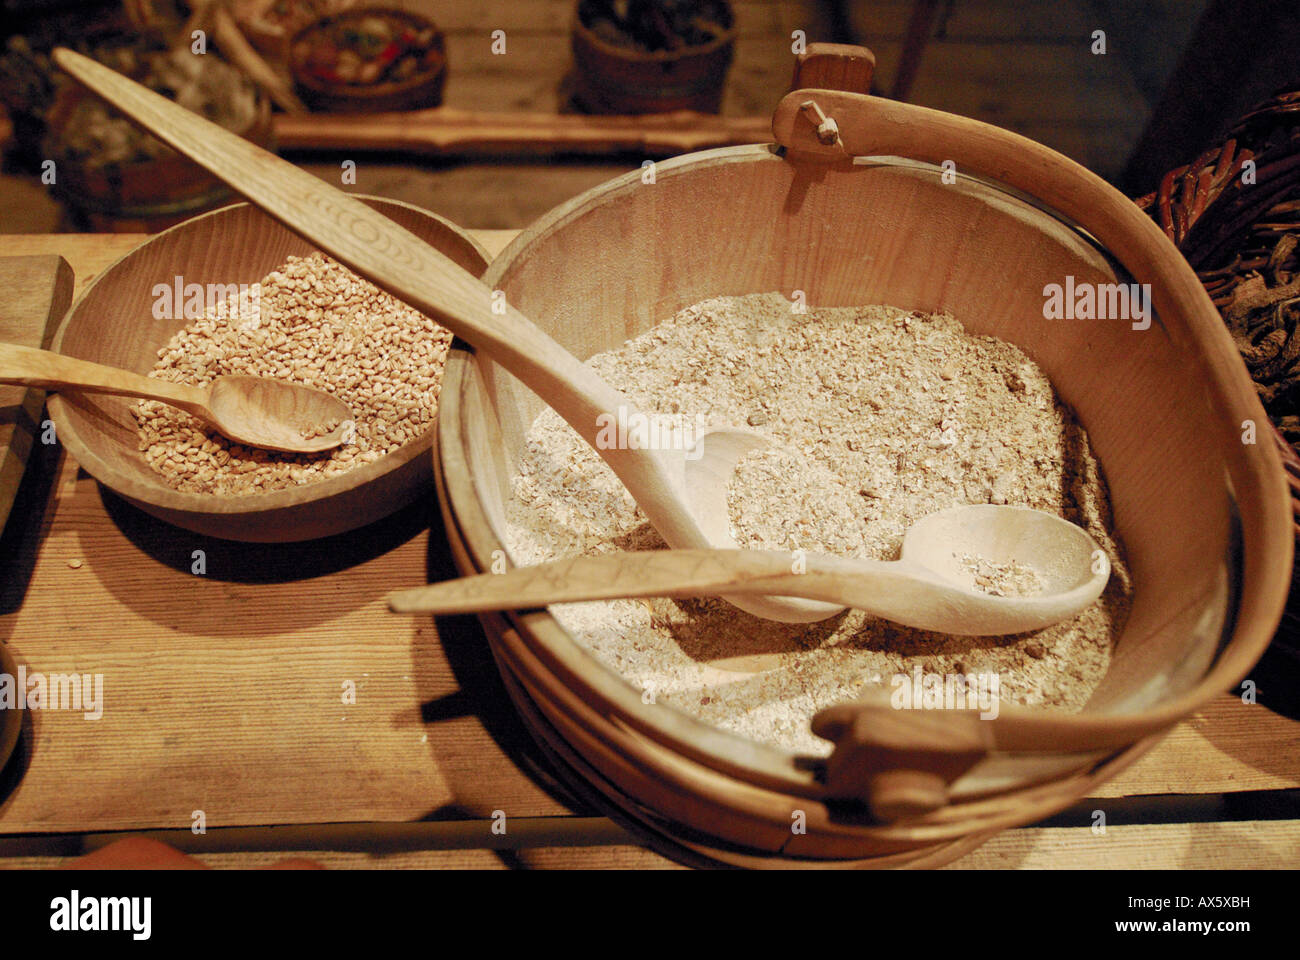 Wooden bowl filled with cereal, exhibit at Bostad Borg Viking Museum, Lofoten, Norway, Europe Stock Photo